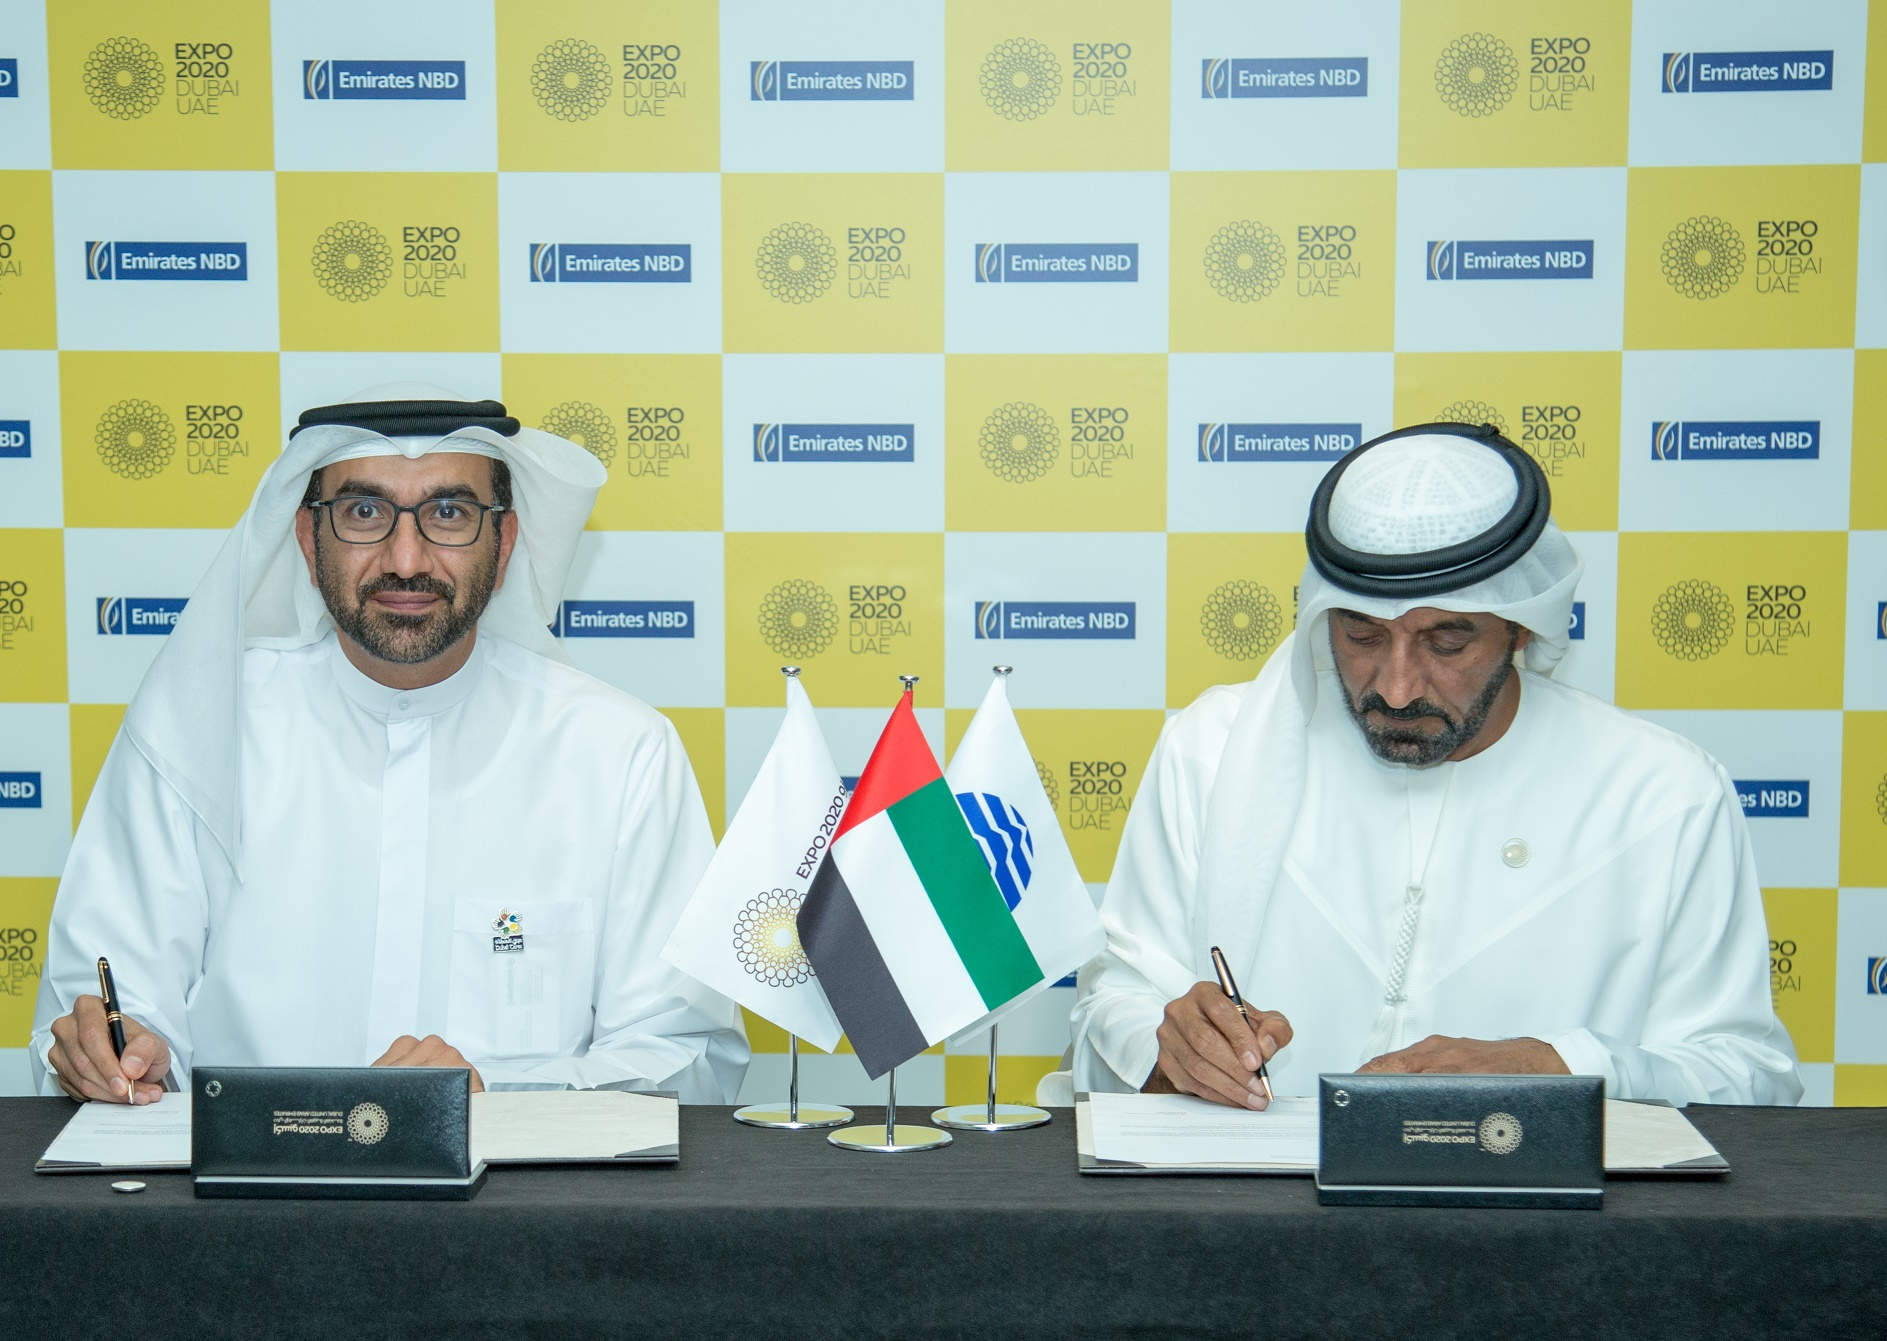 emirates nbd group becomes official banking partner for expo 2020 dubai 2